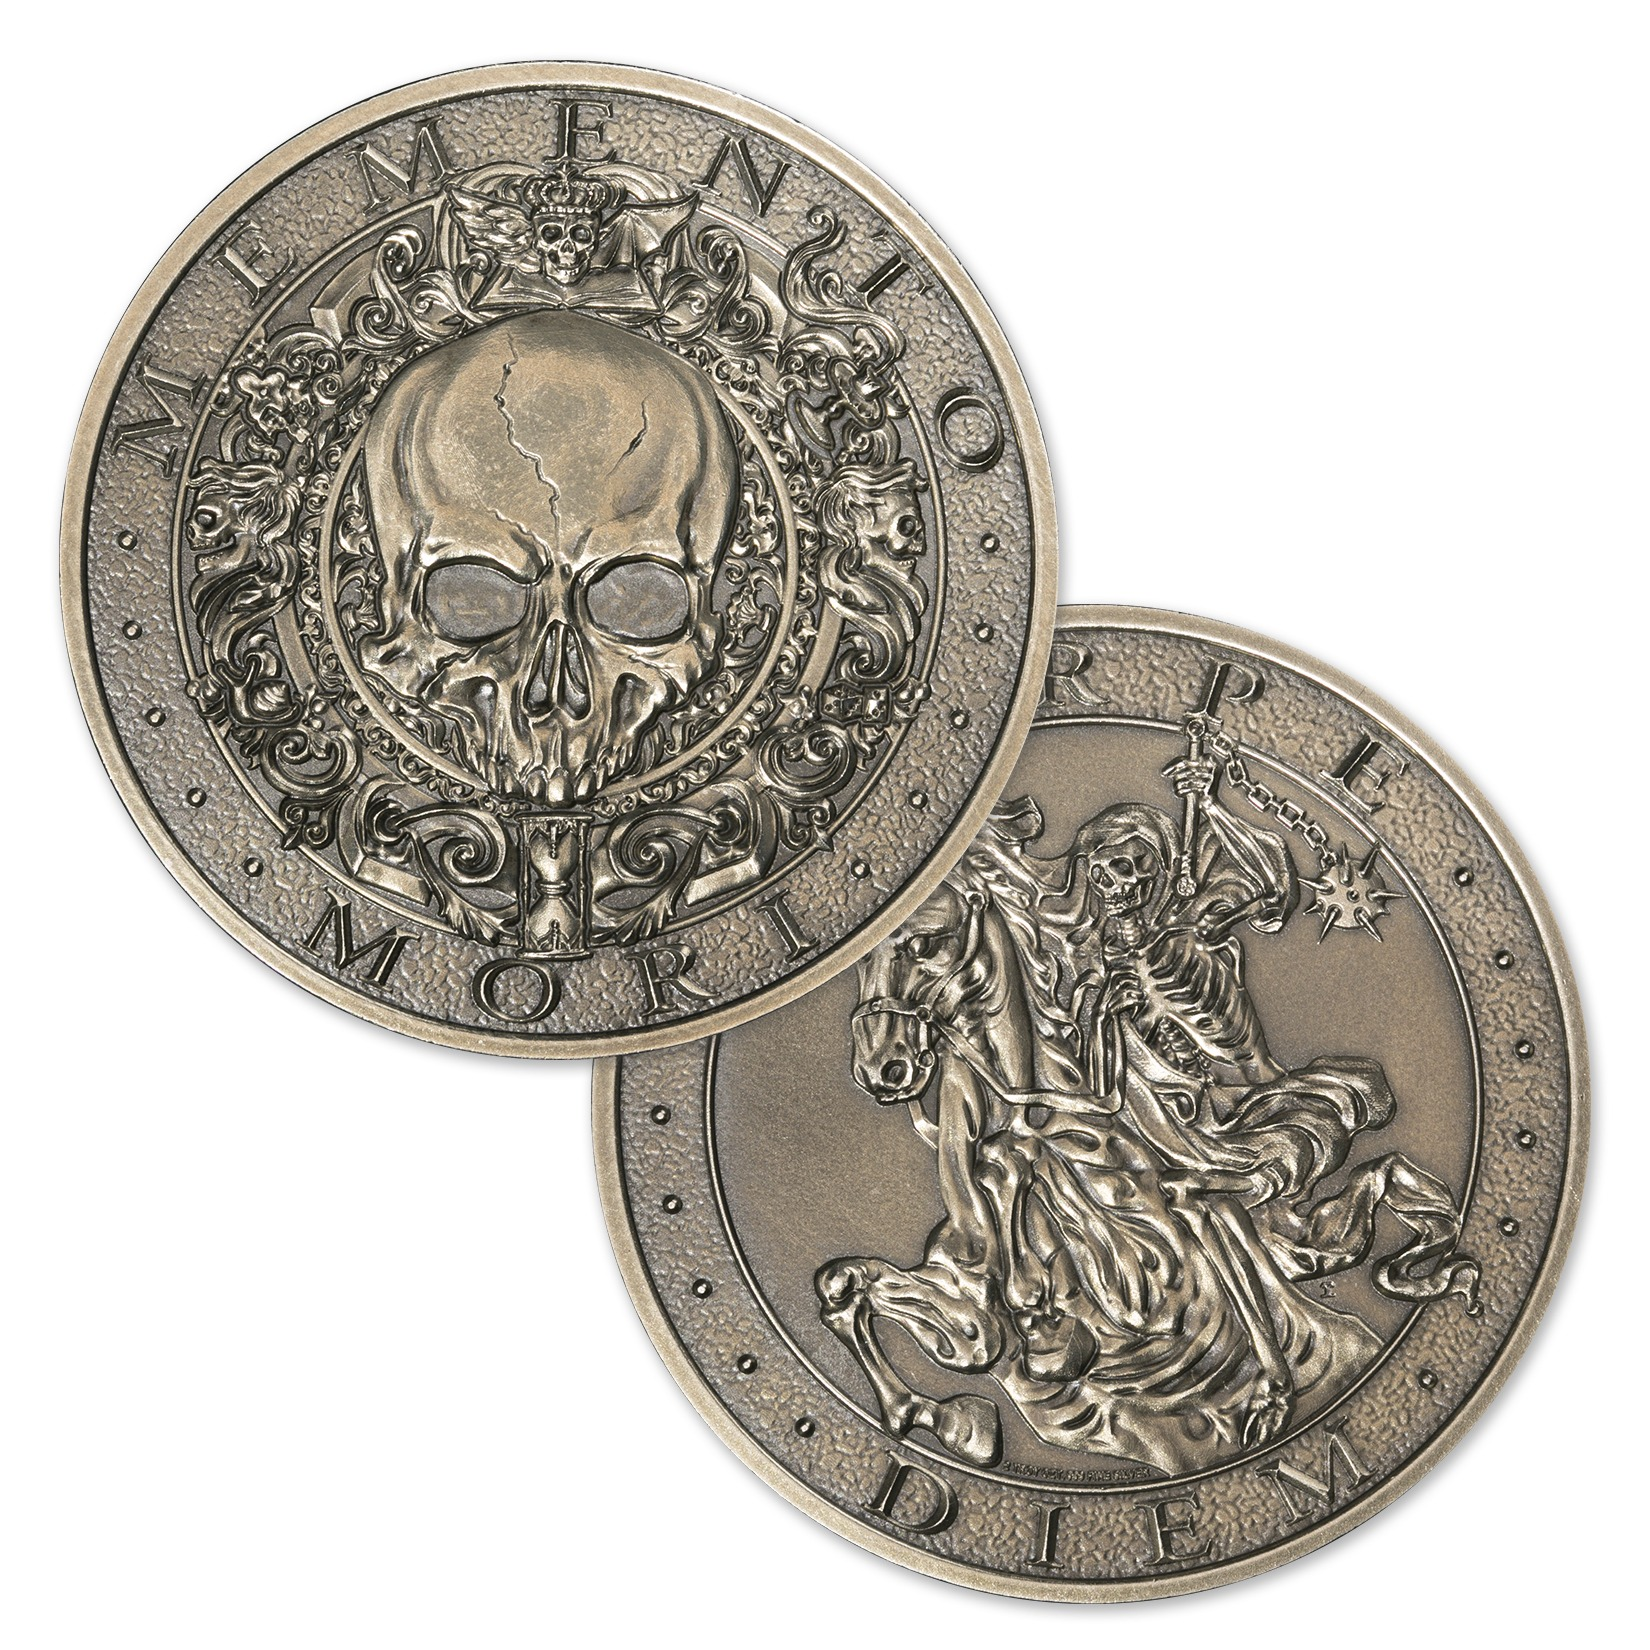 MEMENTO MORI – 2 TROY OUNCE – 50MM ANTIQUED – WITH BOX AND C.O.A. (ONLY 500 MINTED!)